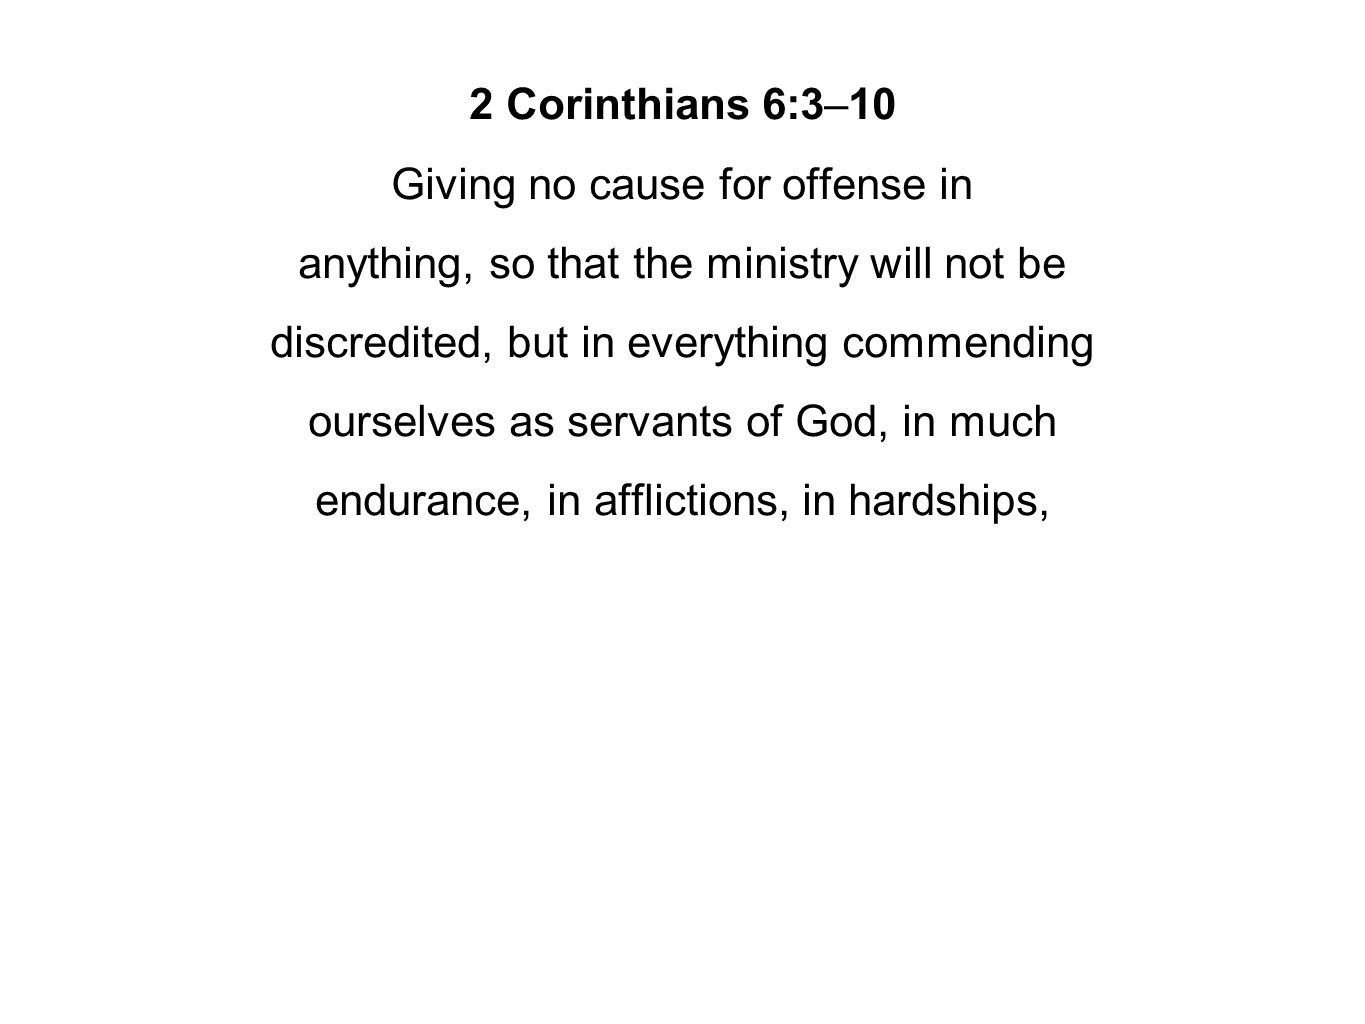 2 Corinthians 6:3–10 Giving no cause for offense in anything, so that the ministry will not be discredited, but in everything commending ourselves as